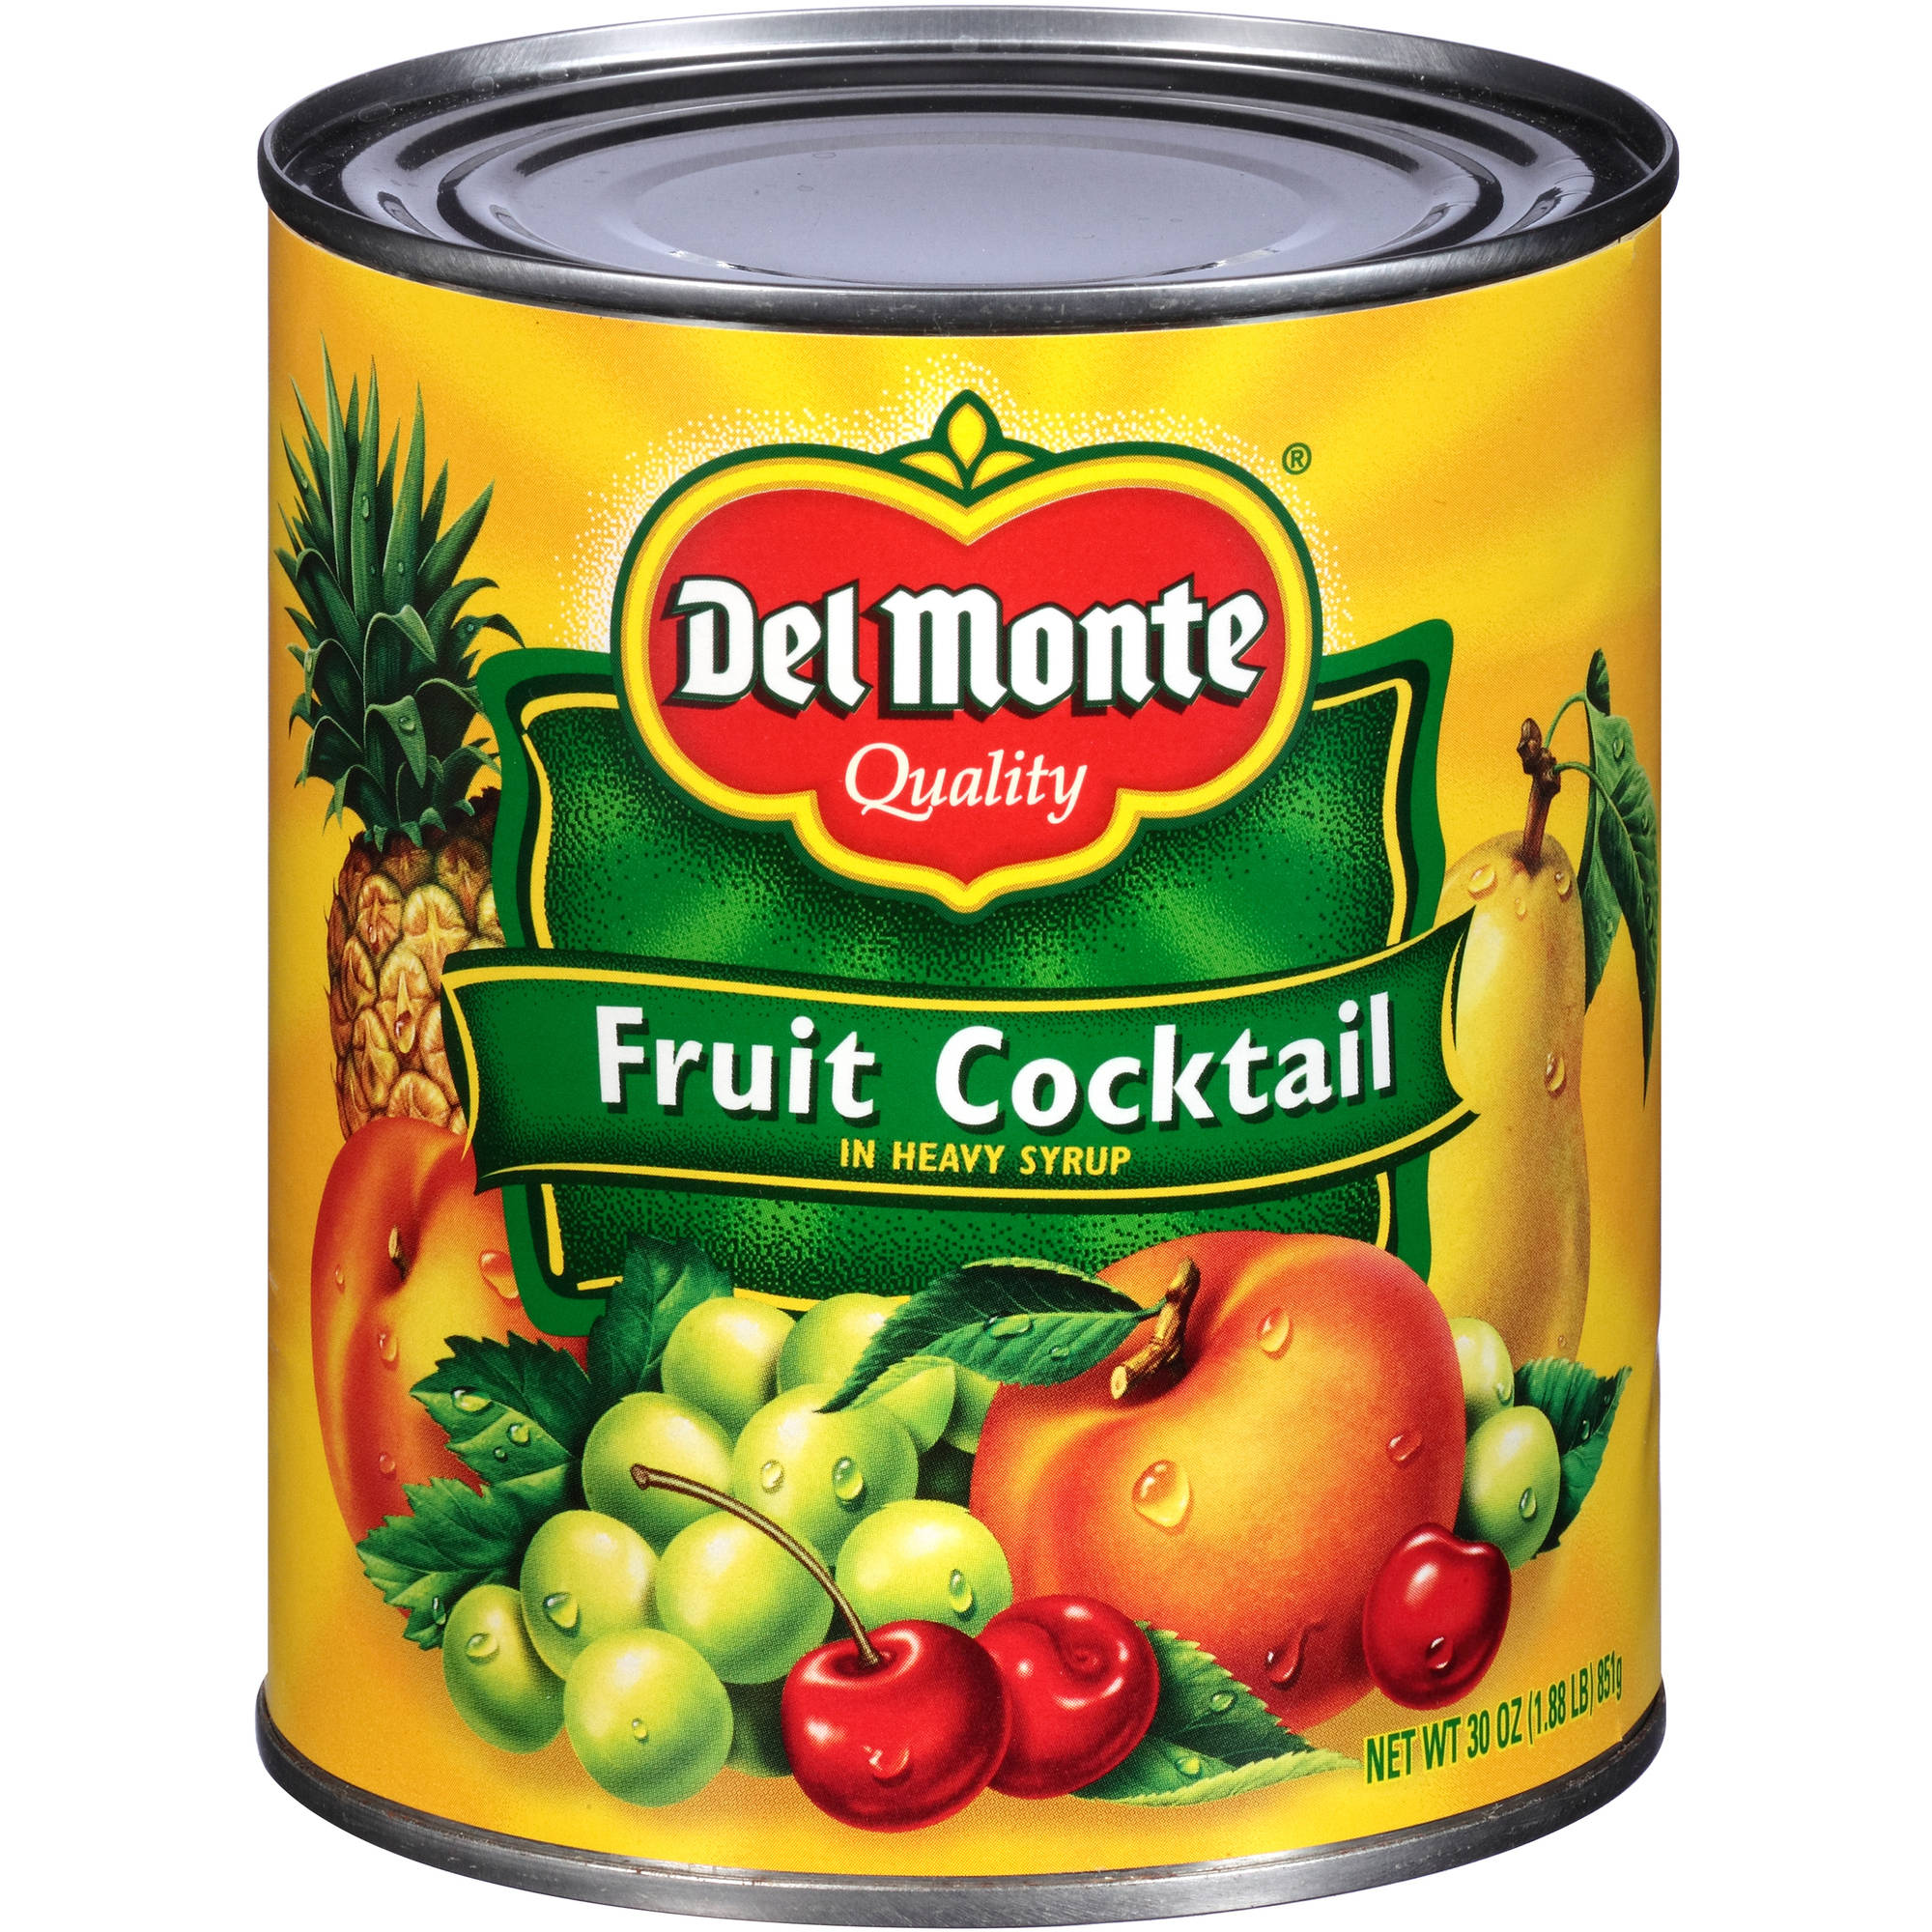 Del Monte In Heavy Syrup Fruit Cocktail, 30 oz